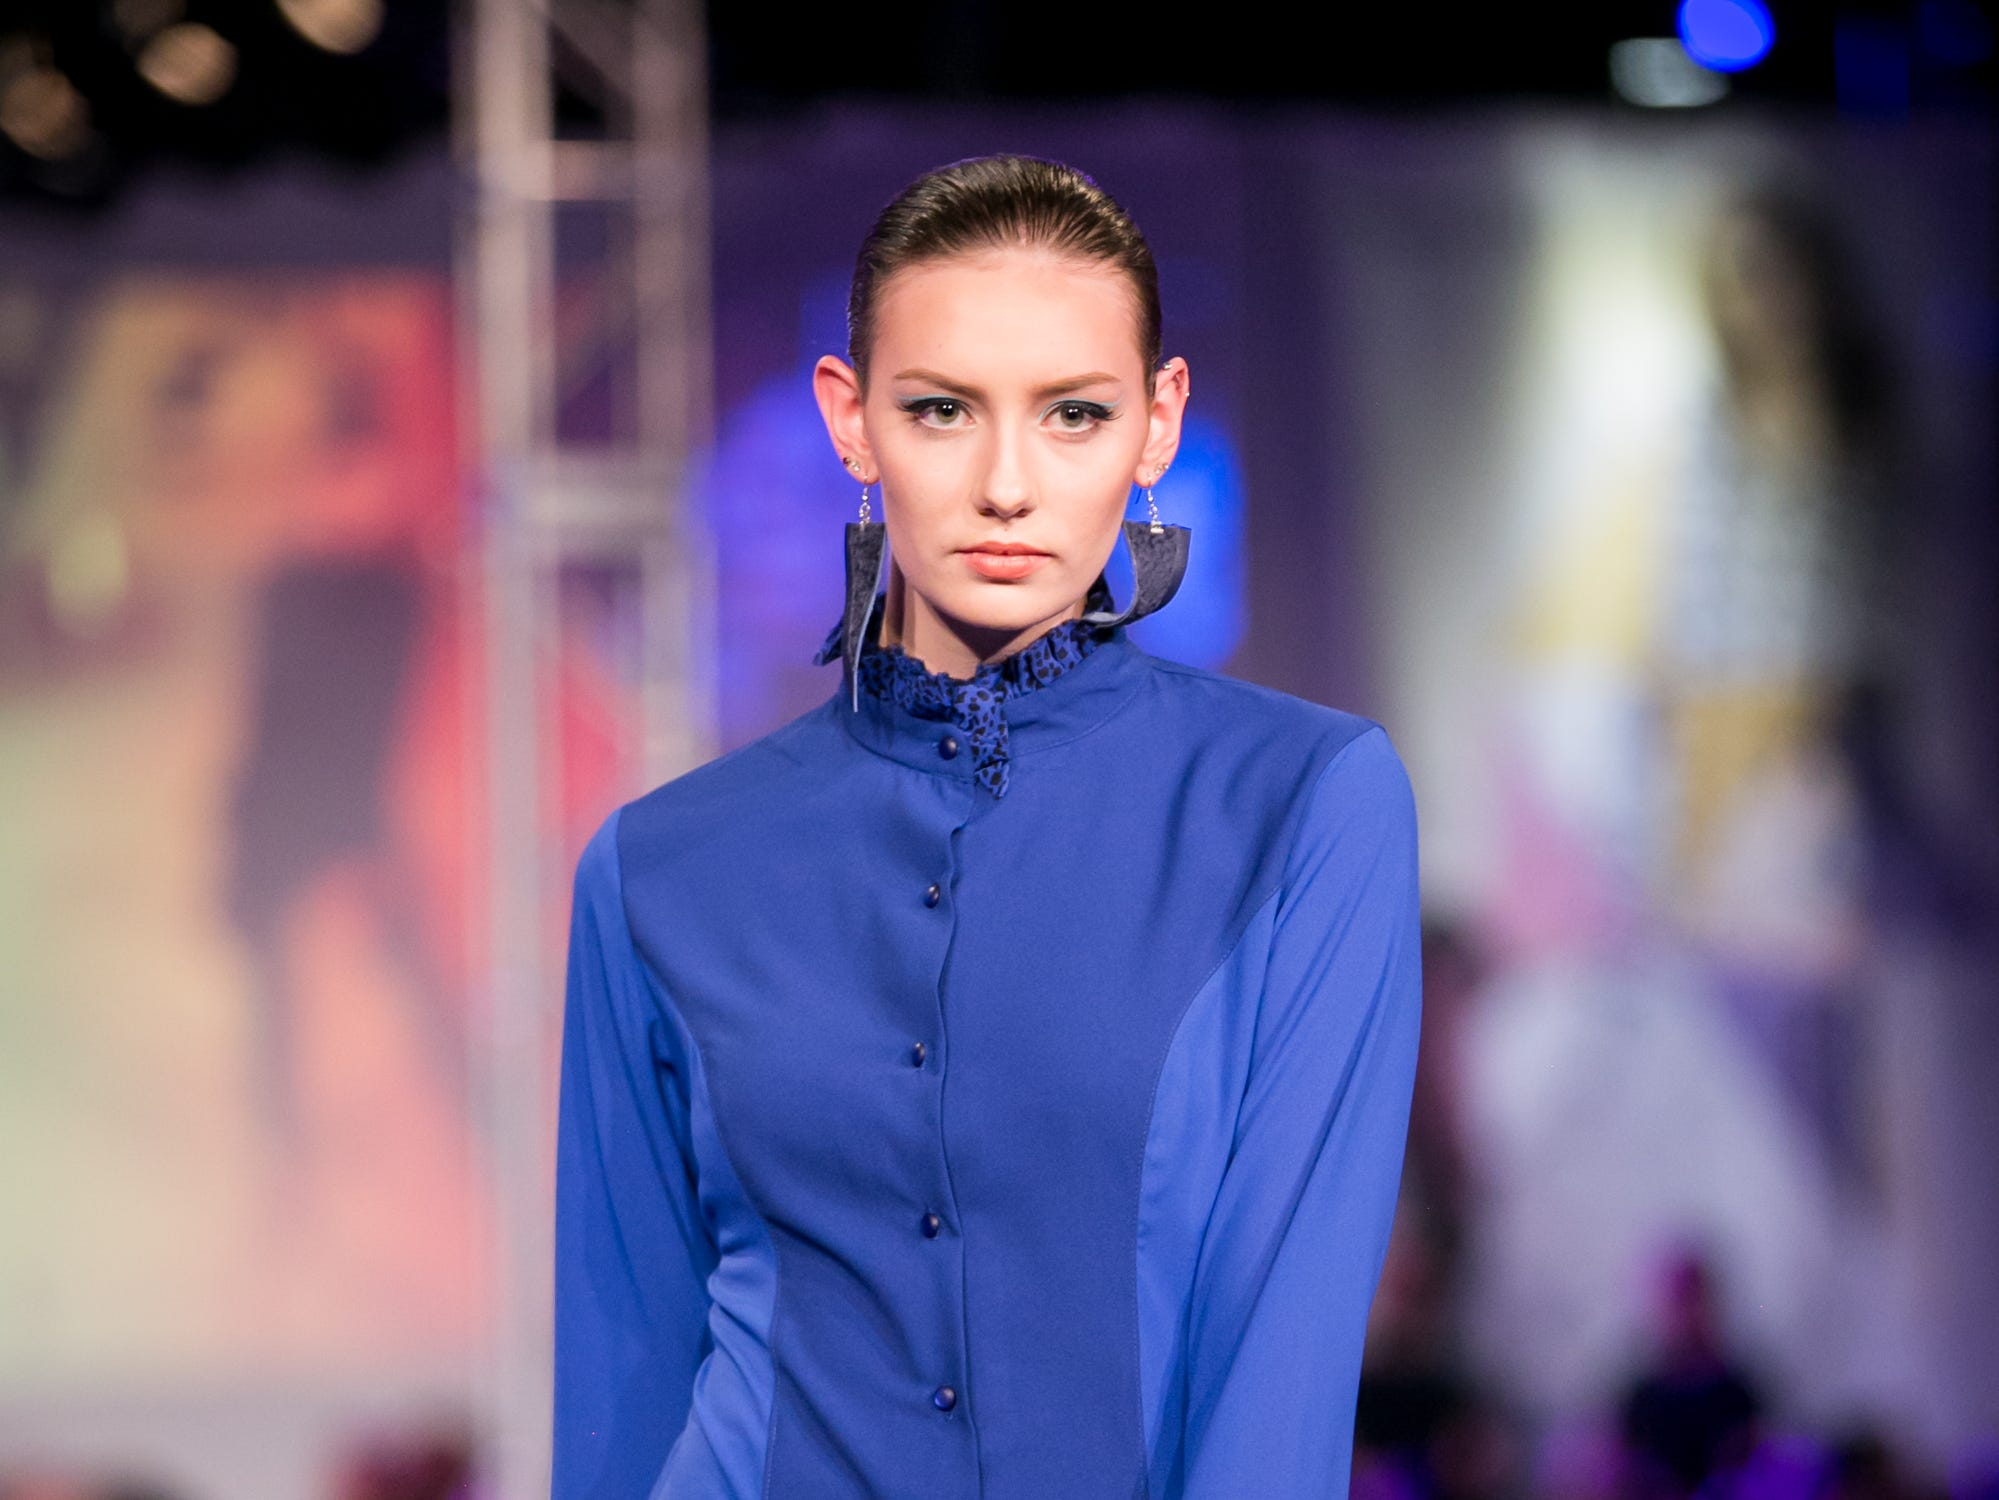 Zelenco's runway during Phoenix Fashion Week at Talking Stick Resort in Scottsdale on Saturday, October 20, 2018.